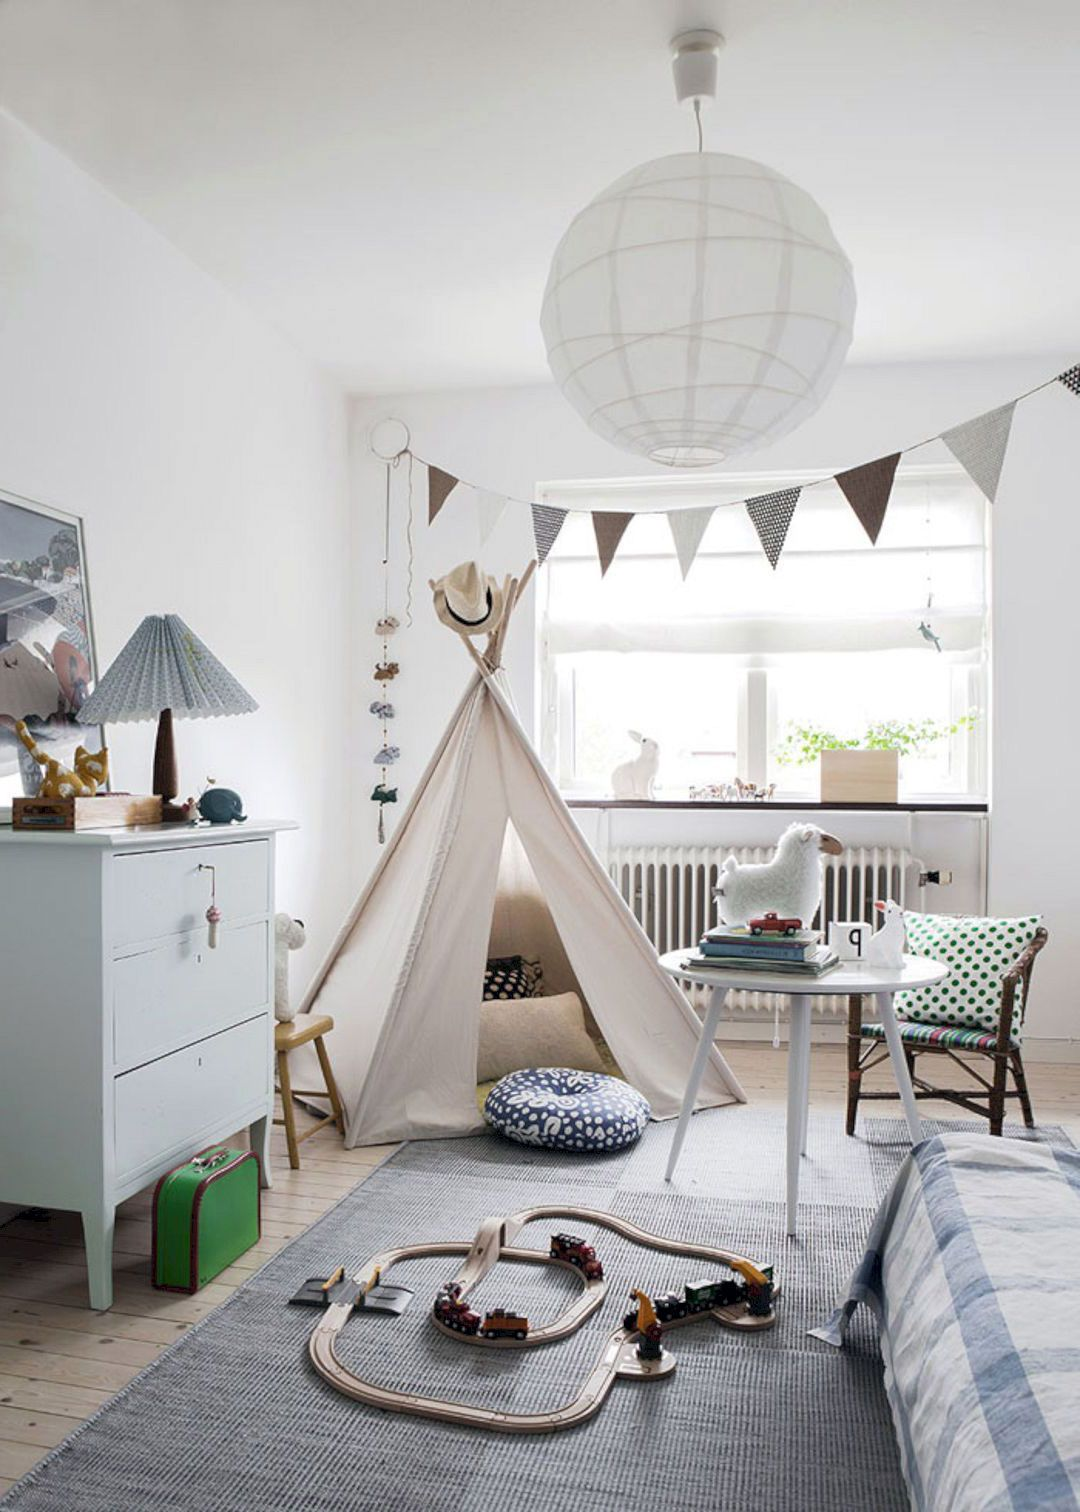 24 Beautiful Scandinavian Interior For Kids Bedroom Ideas In 2020 Scandinavian Kids Rooms Scandinavian Bedroom Decor Boys Room Decor